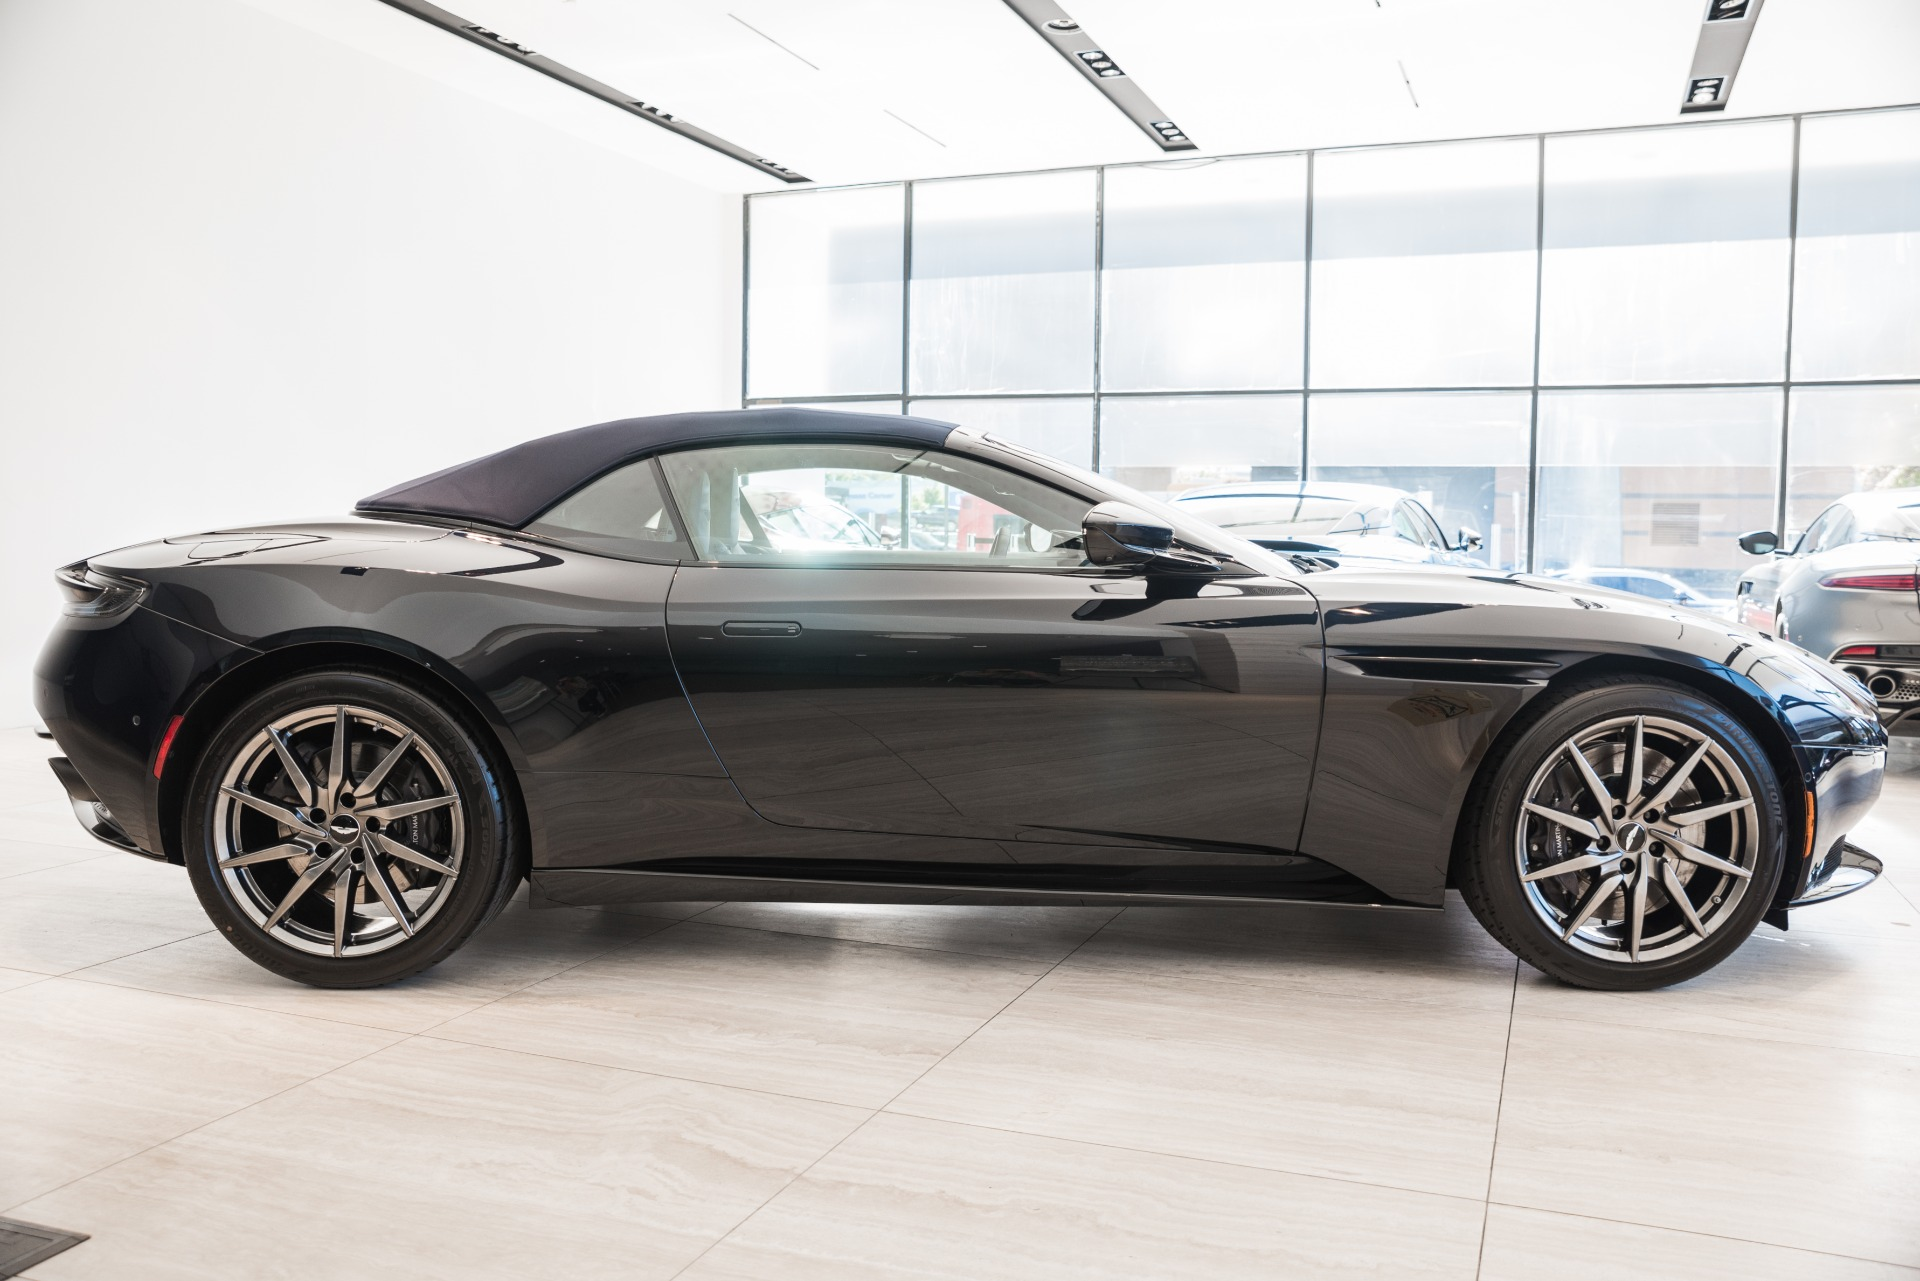 New-2020-ASTON-MARTIN-DB11-Volante